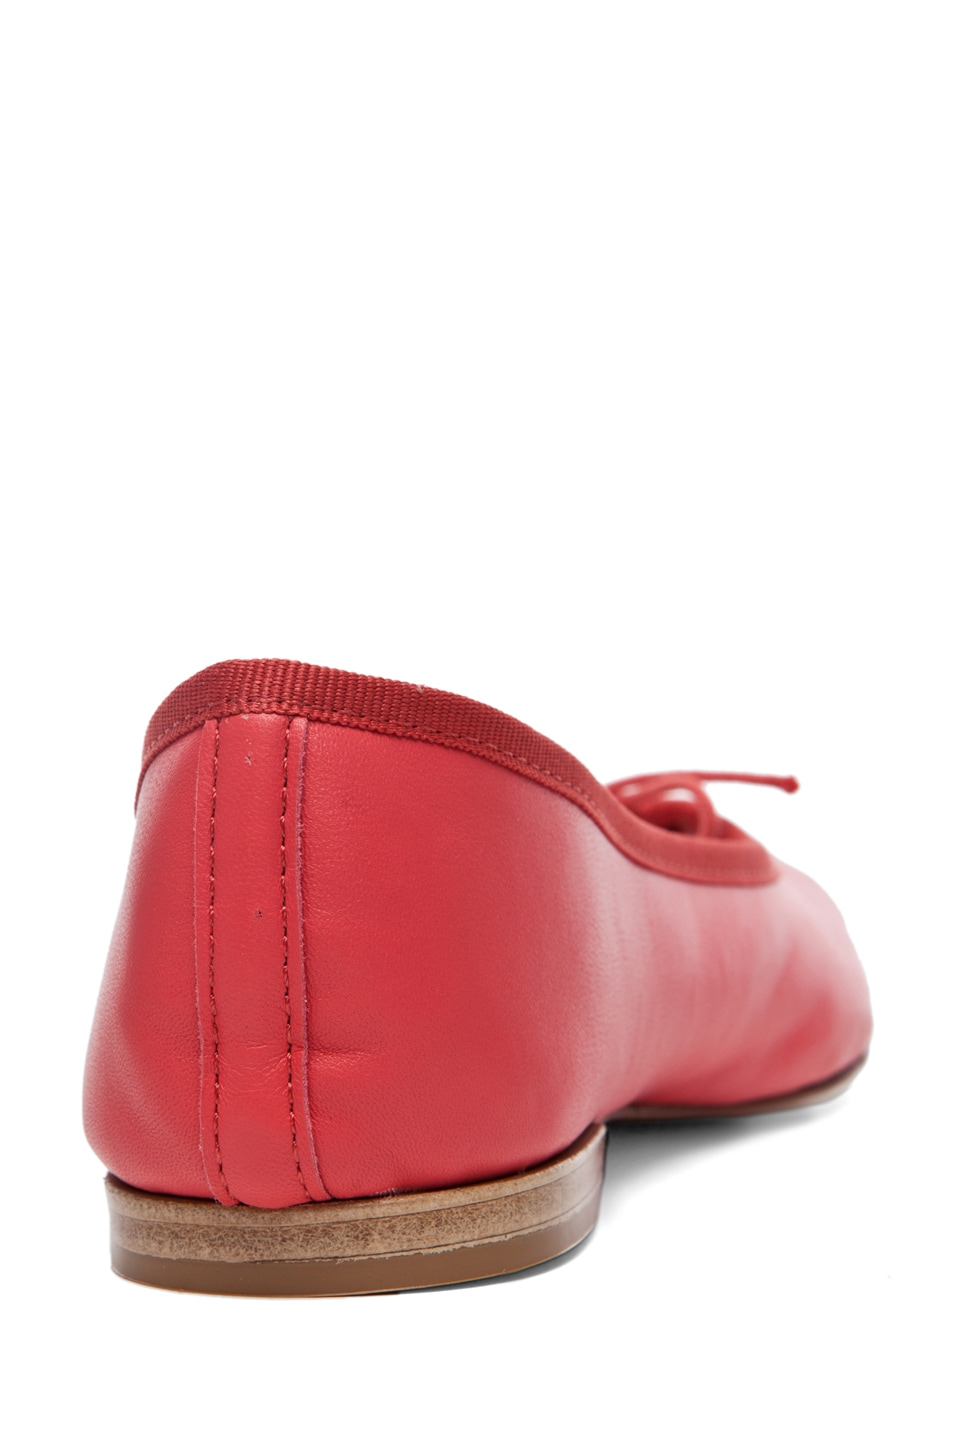 Image 3 of Repetto Lambskin Flat in Coral